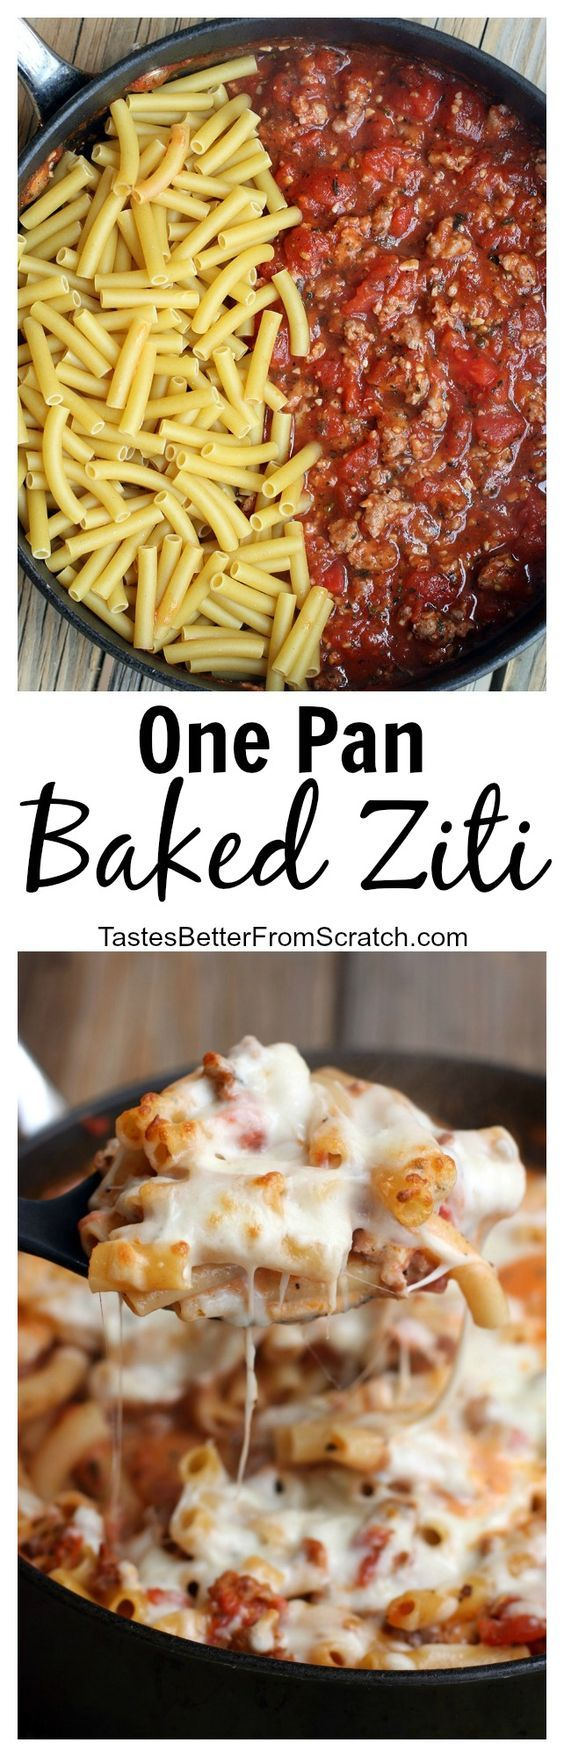 My family LOVES this easy, simple One Pan Baked Ziti recipe. It's fast and delicious--ready in less than 30 minutes!